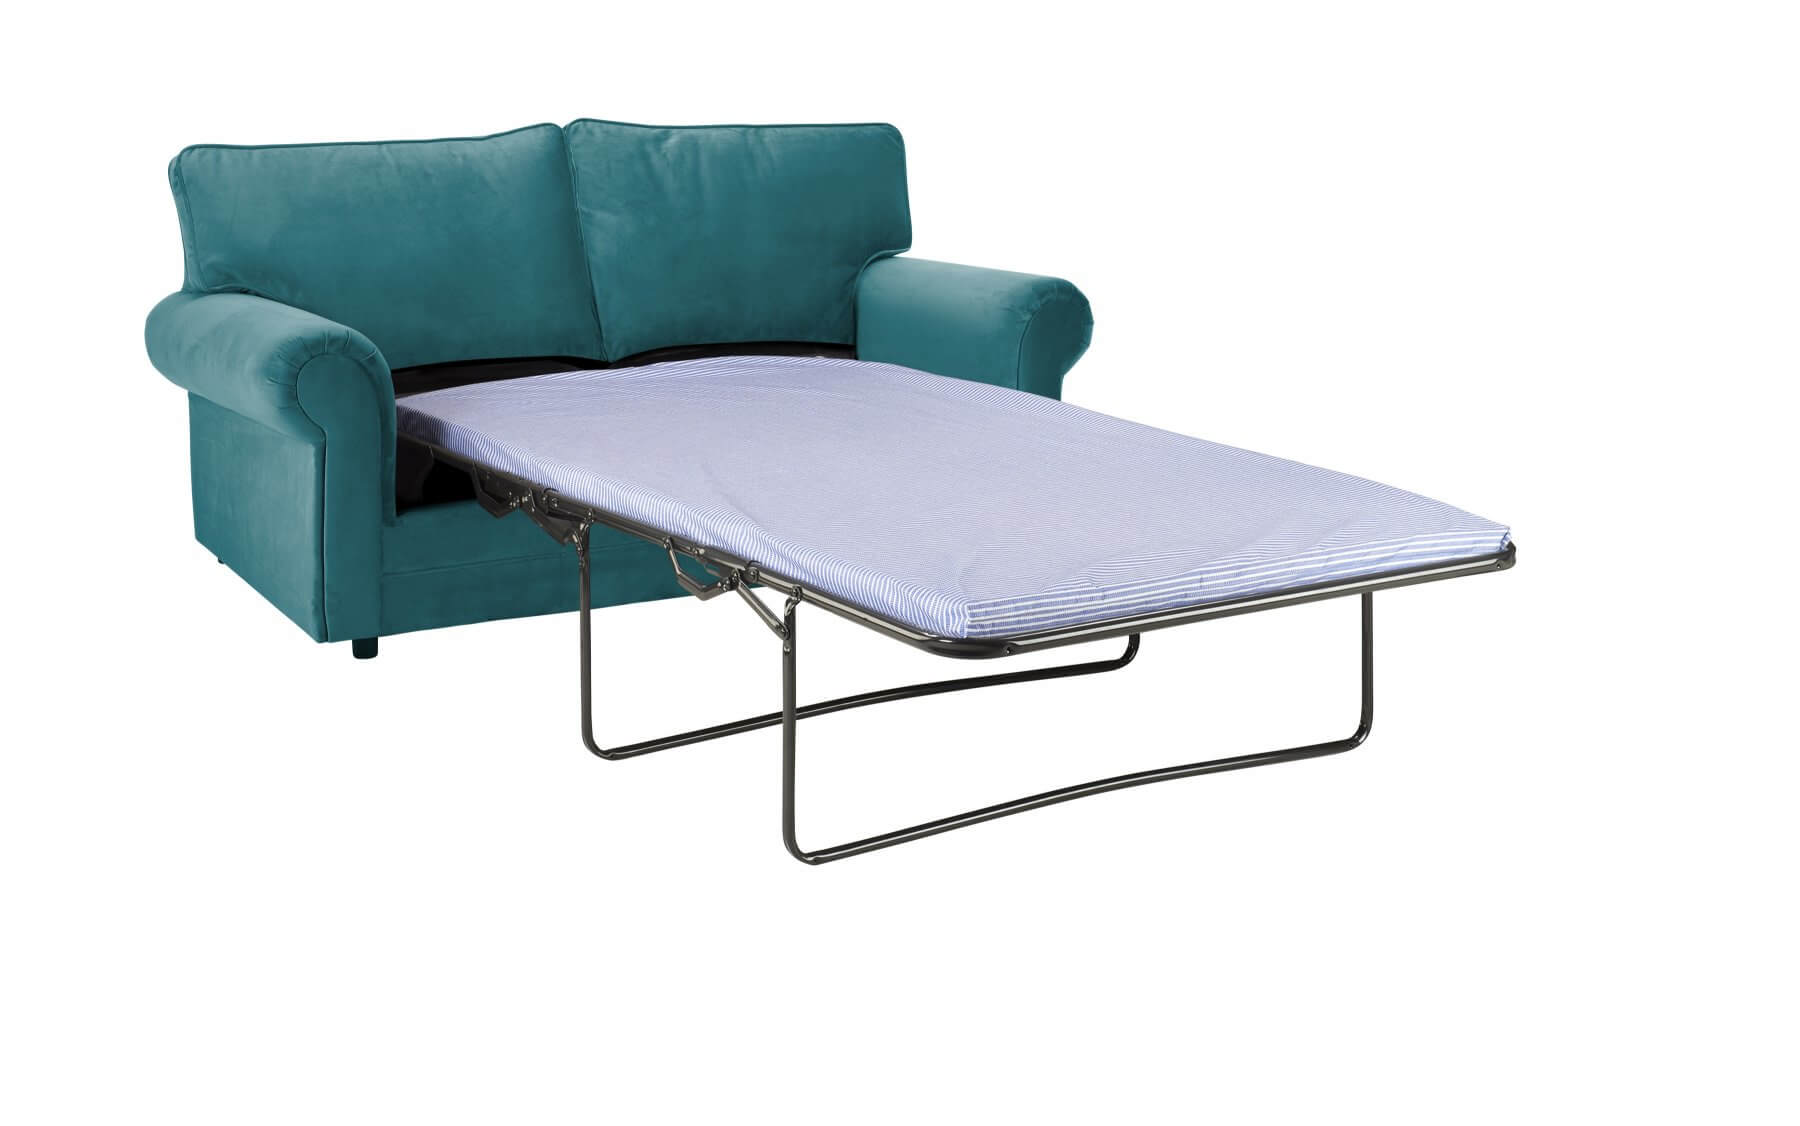 Turquoise Velvet 3 Seater Charlotte Sofa Bed With High Back